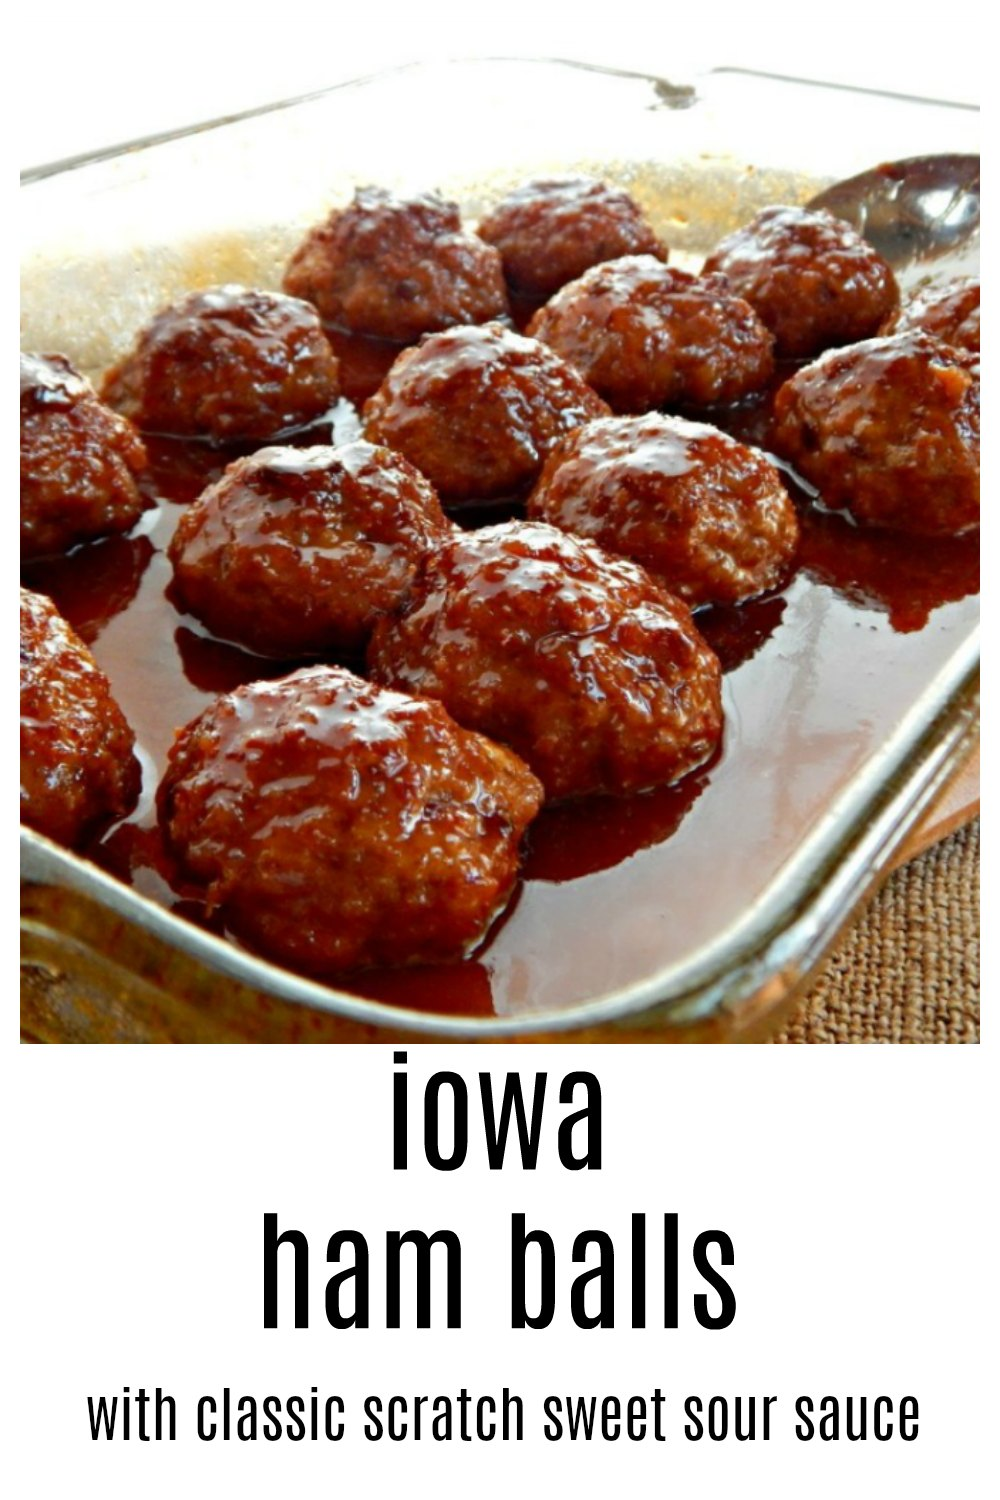 The real deal Iowa Ham Balls with a Sweet-Sour Glaze. No soups or strange stuff, Just great, down-home cooking! This is the way you want to use up some of that leftover holiday ham! #HamBalls #IowaHamBalls. #LeftoverHam #GermanRecipes #GermanAmerican #LeftoverHam #DownHomeCooking